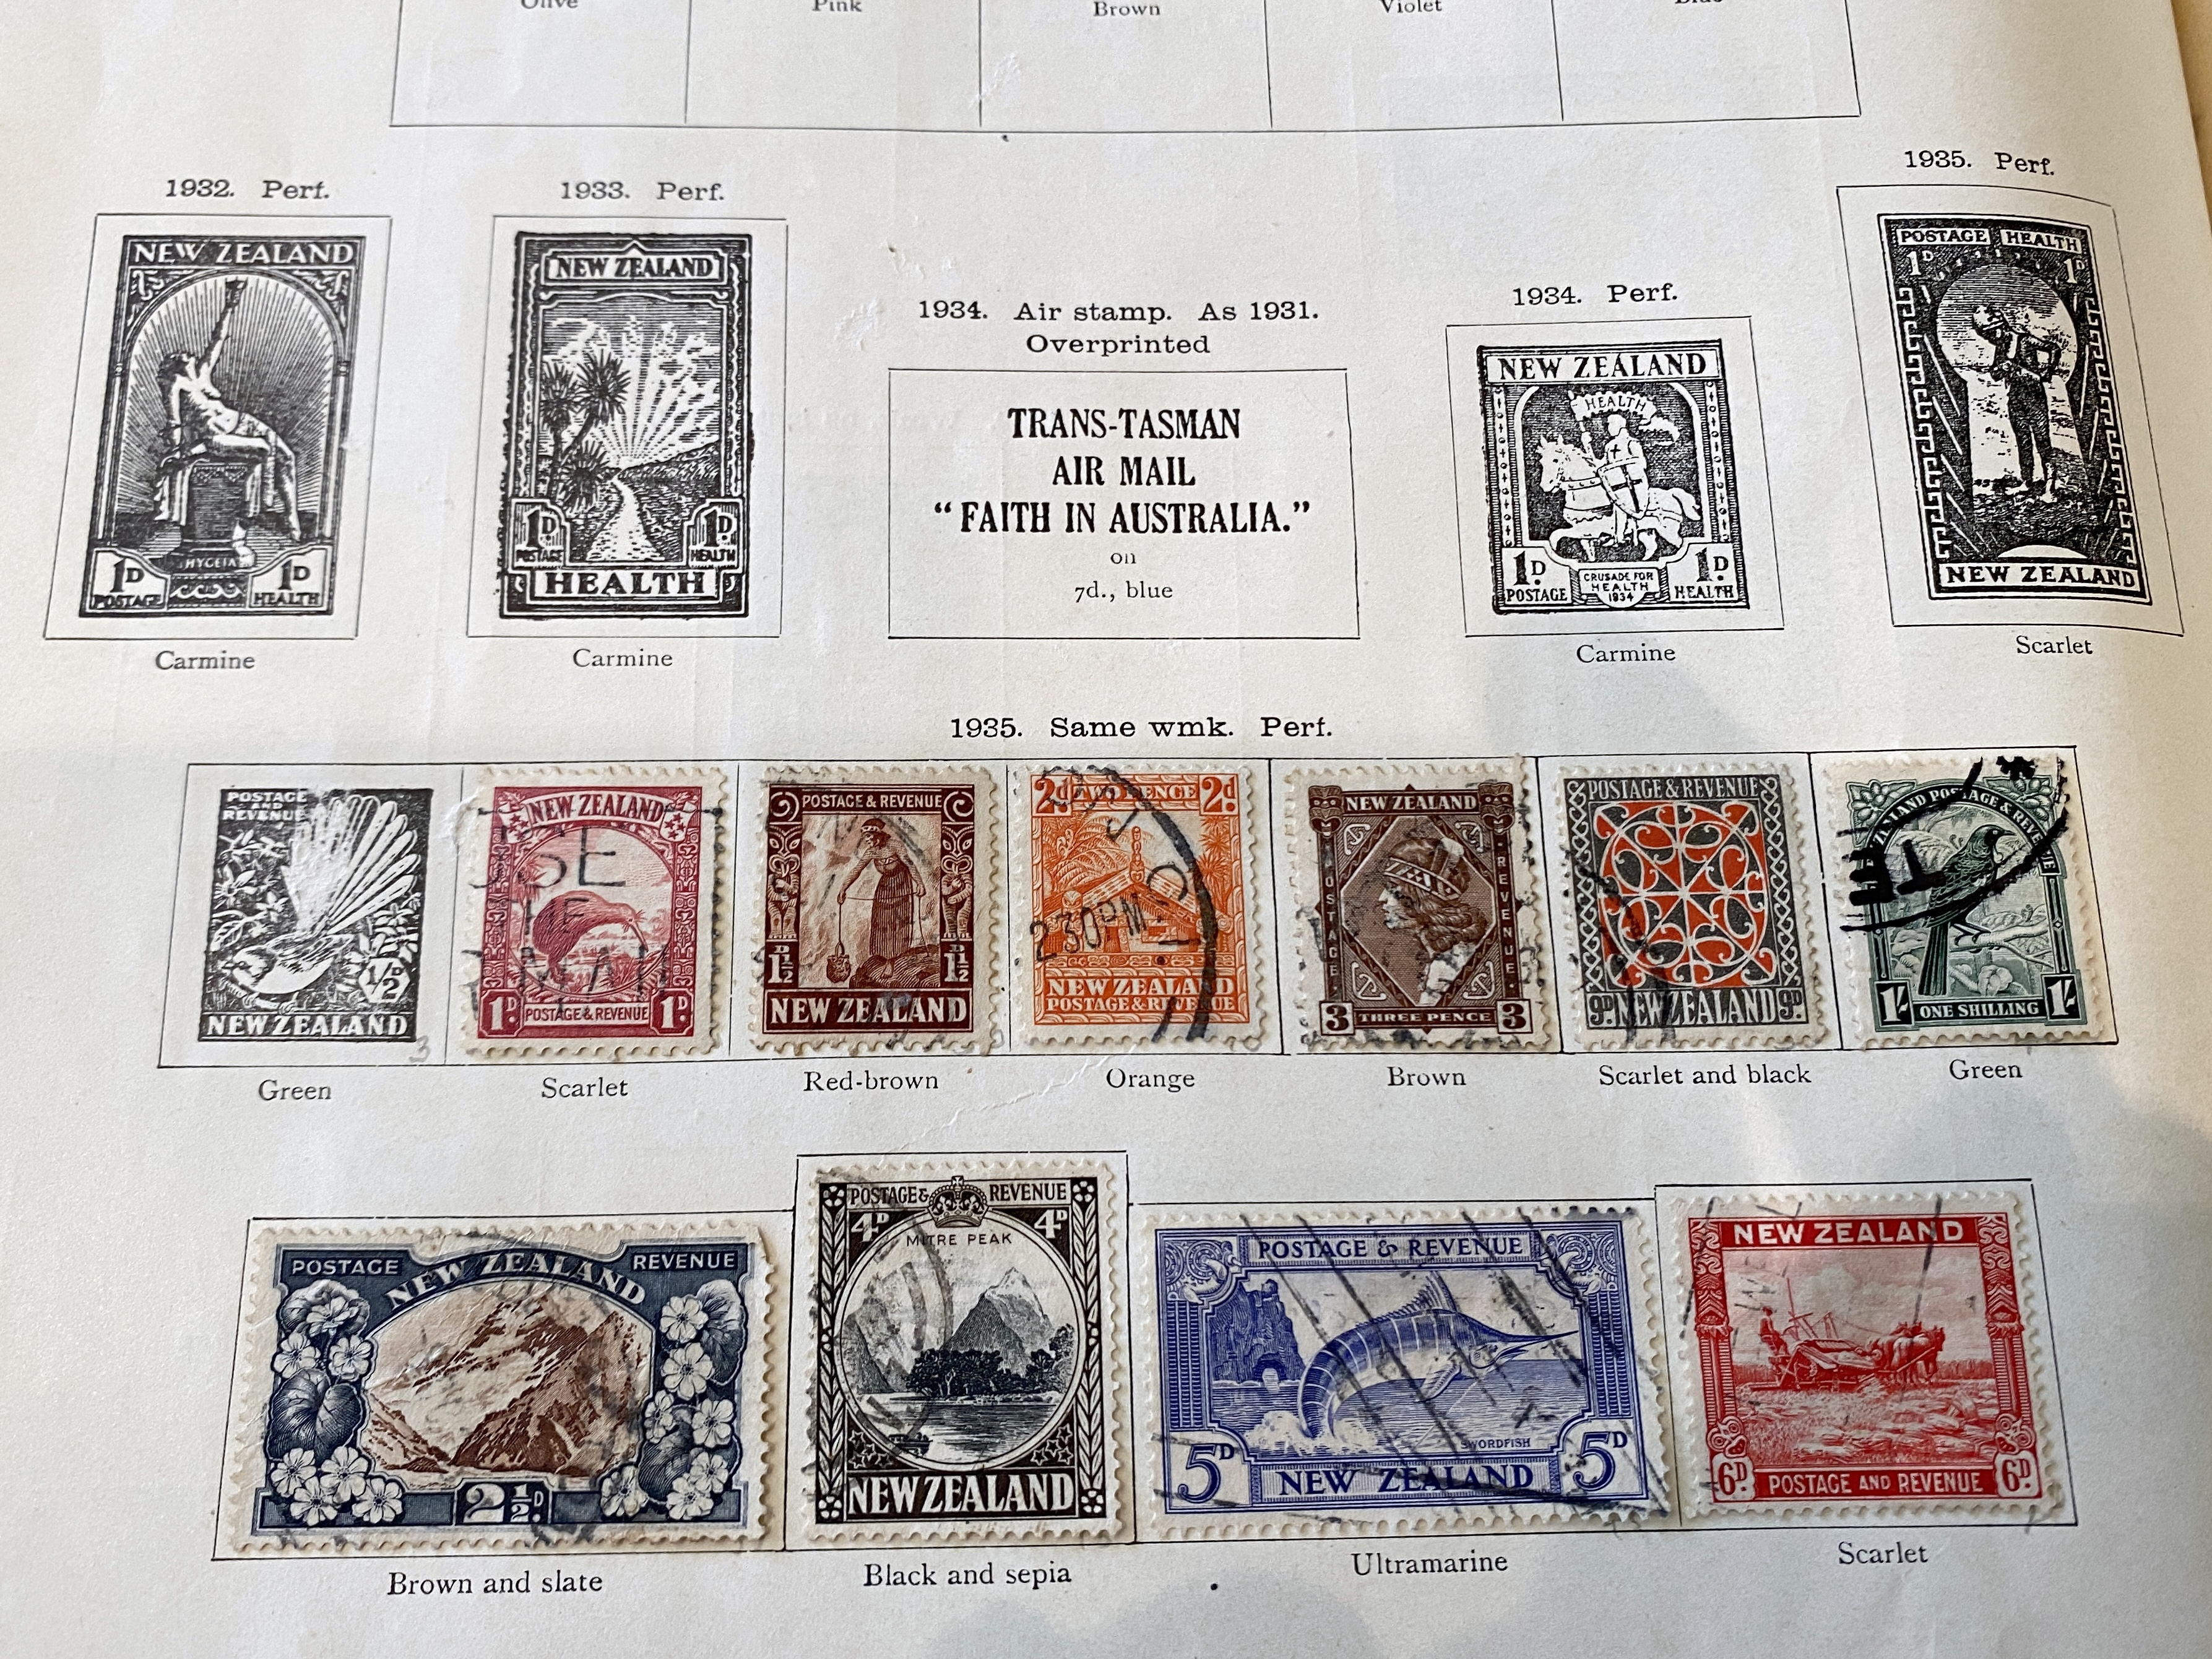 Trans-Tasmanian New Zealand postage stamps